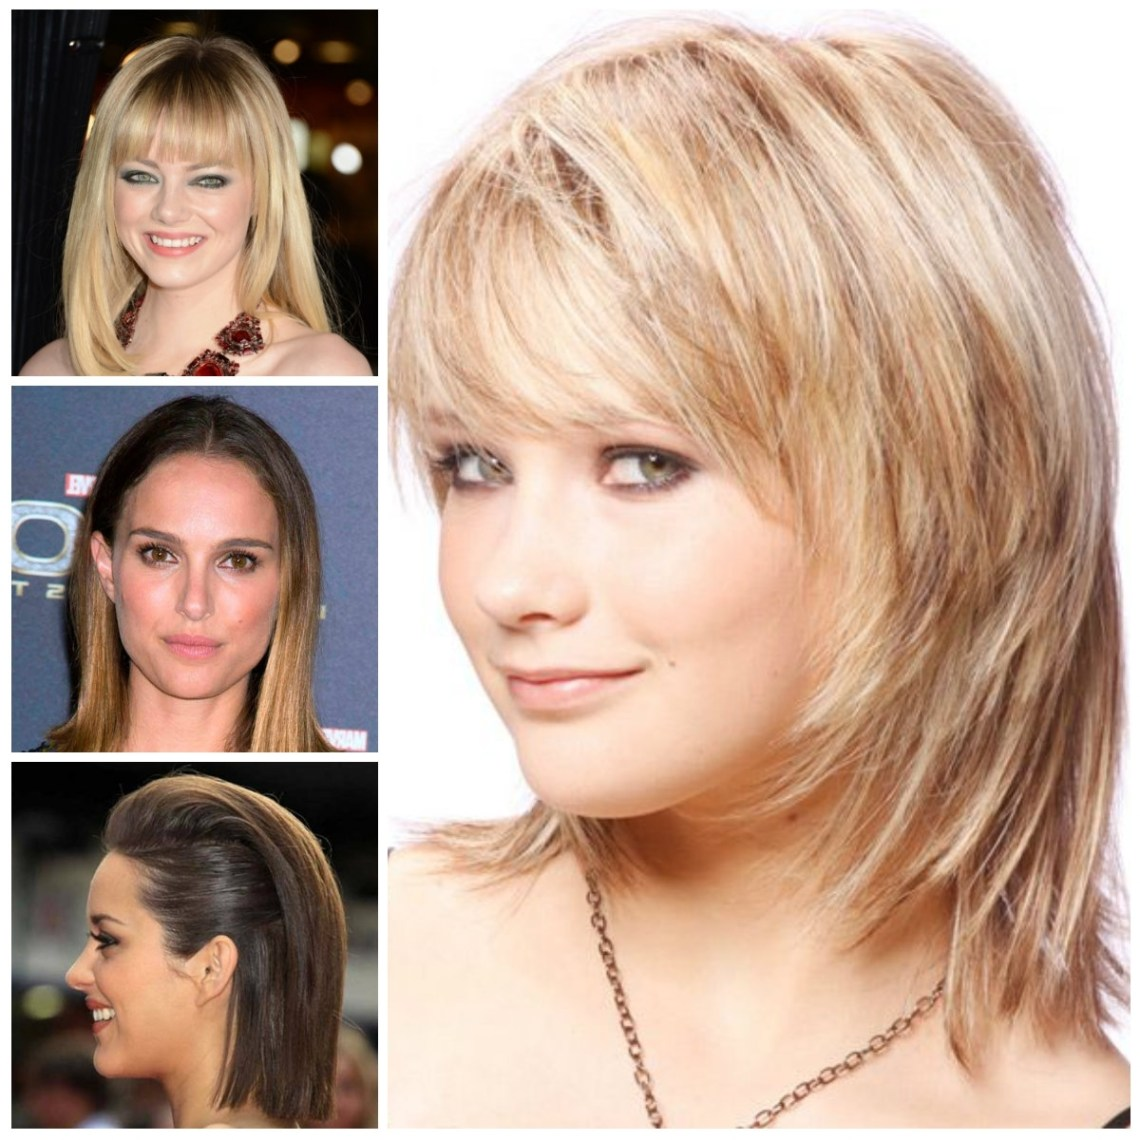 Mid Length Straight Hairstyle Ideas For 2016   2019 Haircuts 10+ Amazing Medium Hairstyles Fine Hair 2017